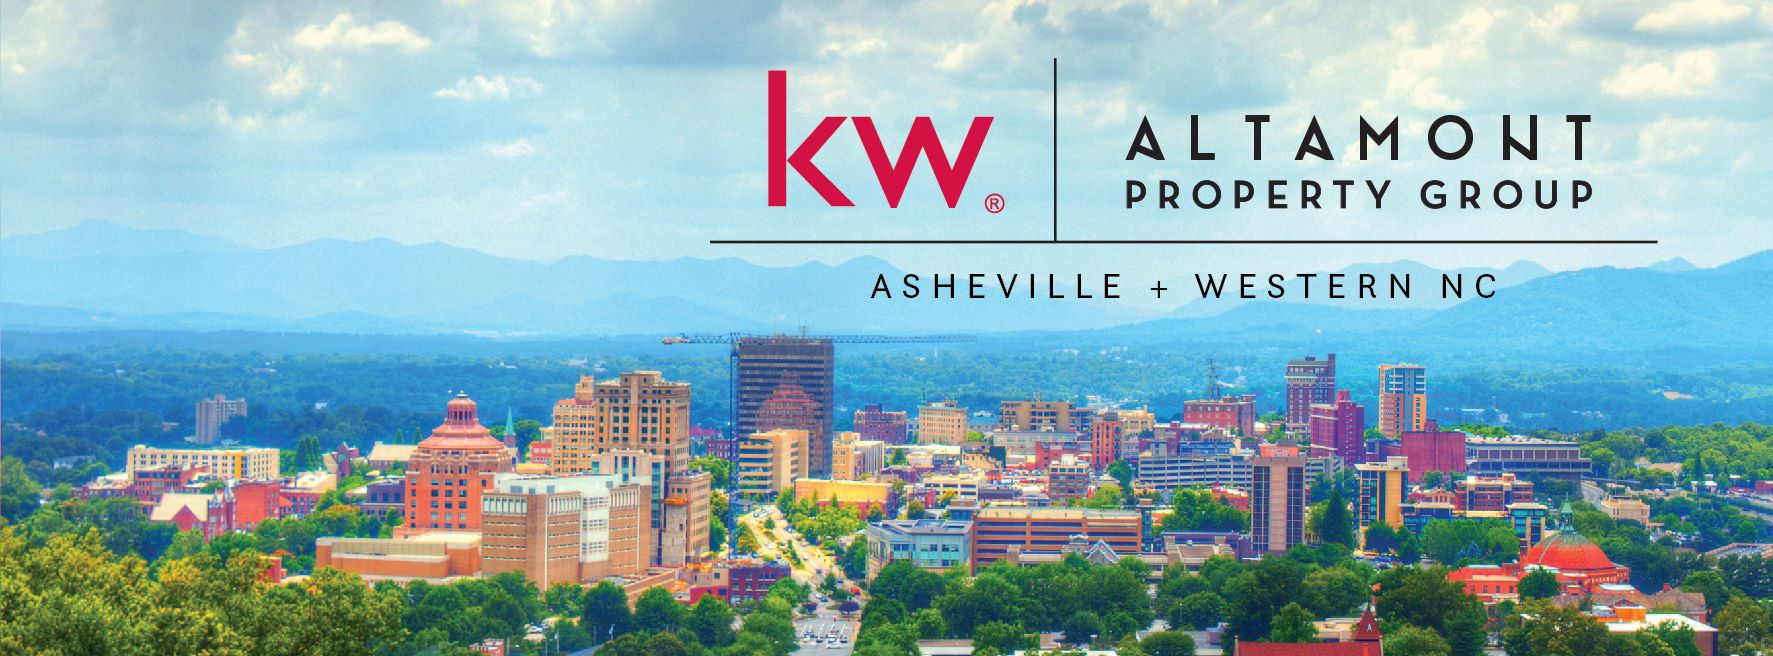 Asheville Altamont Property Group